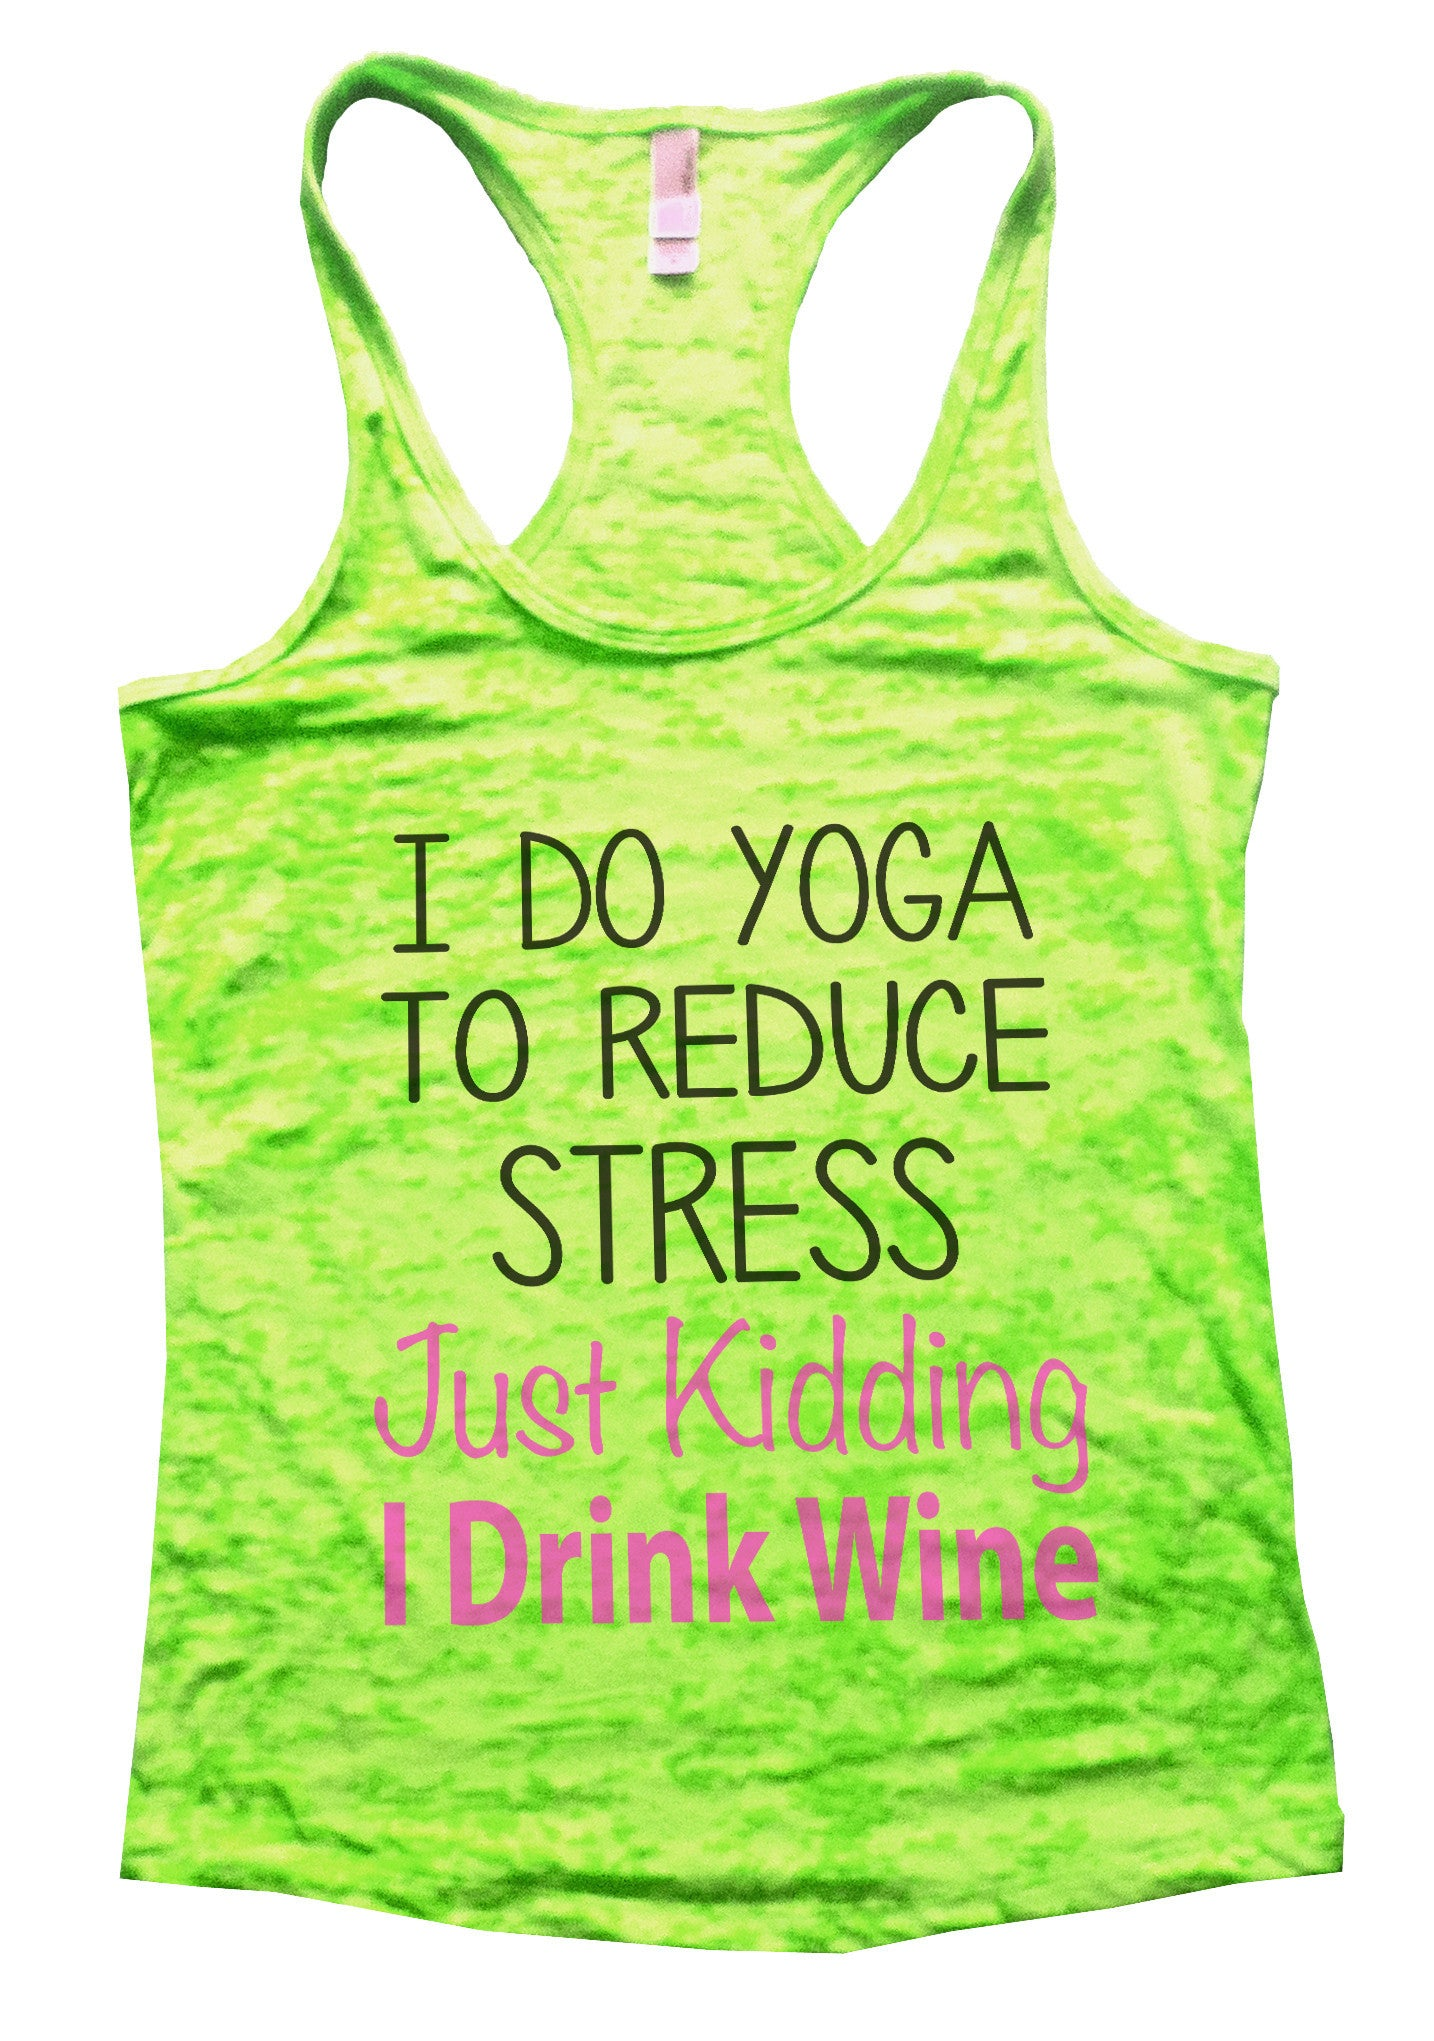 I Do Yoga To Reduce Stress Just Kidding I Drink Wine Burnout Tank Top By BurnoutTankTops.com - 627 - Funny Shirts Tank Tops Burnouts and Triblends  - 2